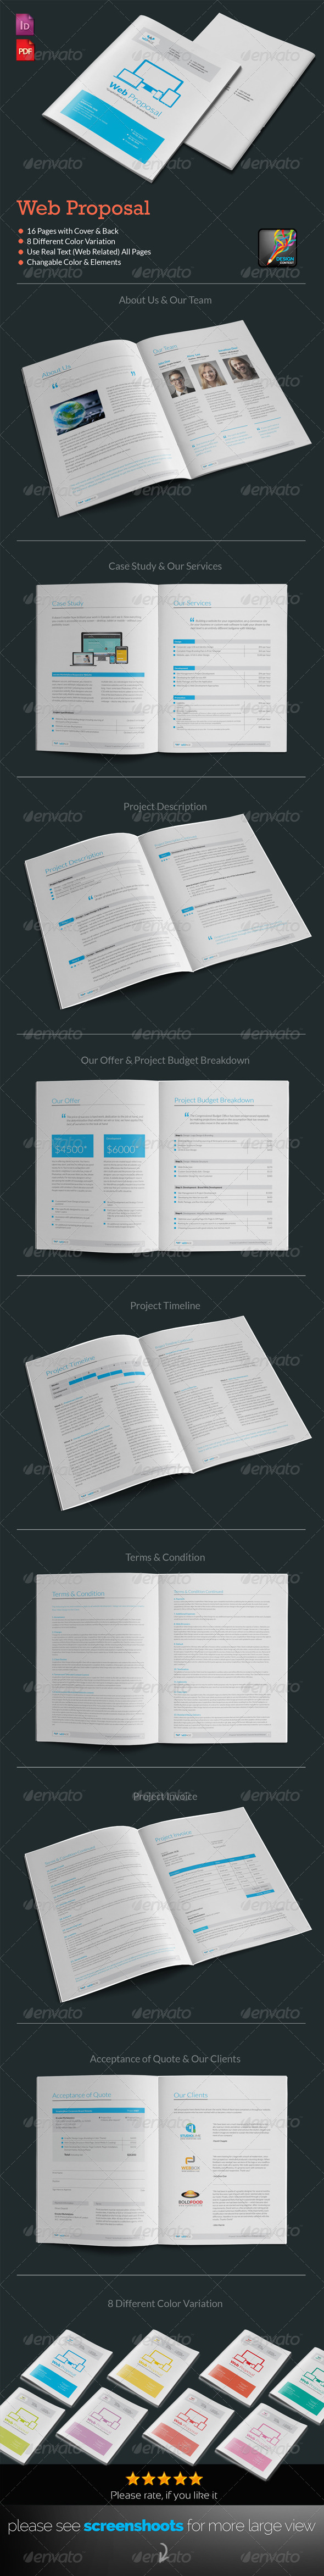 GraphicRiver Web Proposal For Web Design & Development Agency 7025608